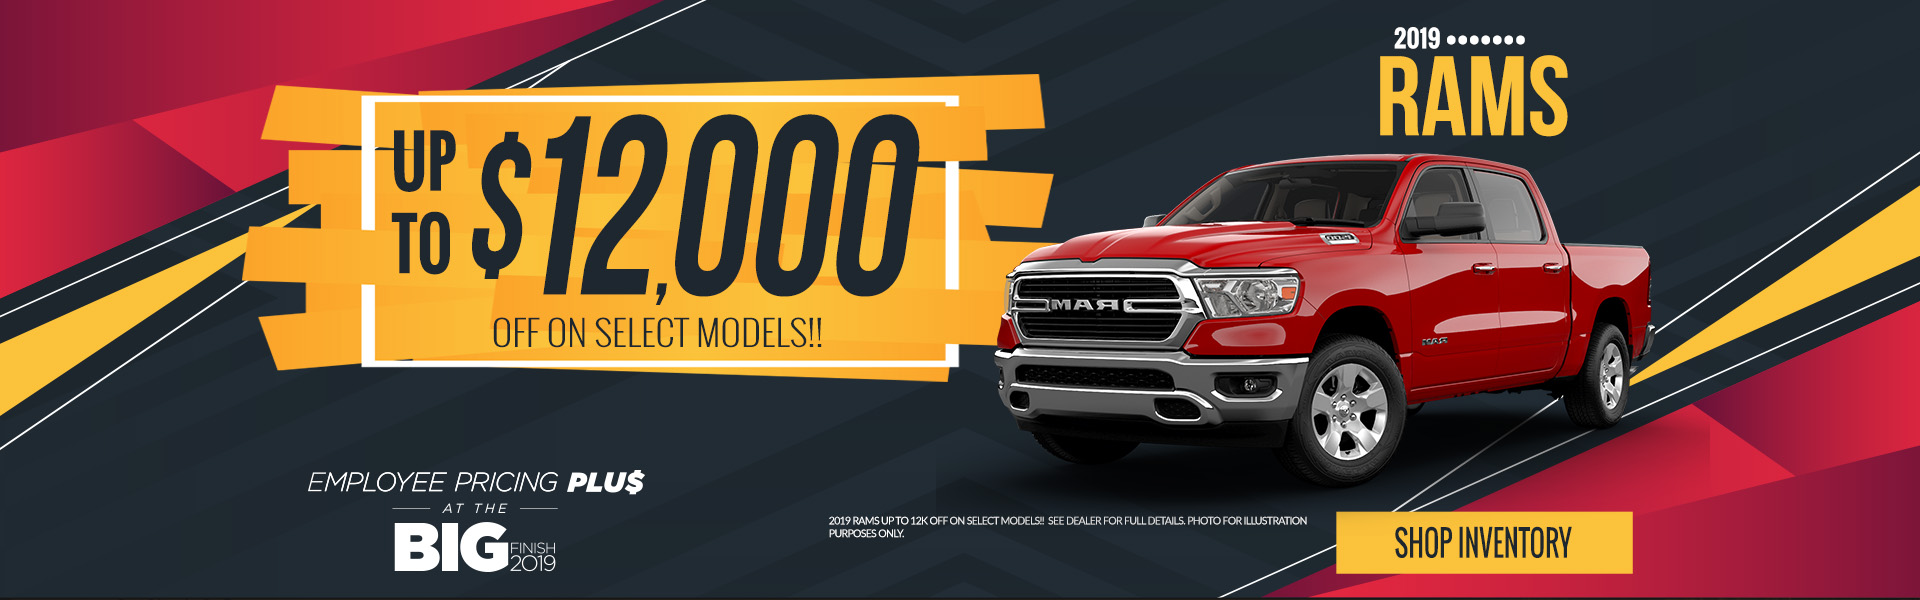 2019 Ram Trucks - up to 12,000 off on select models